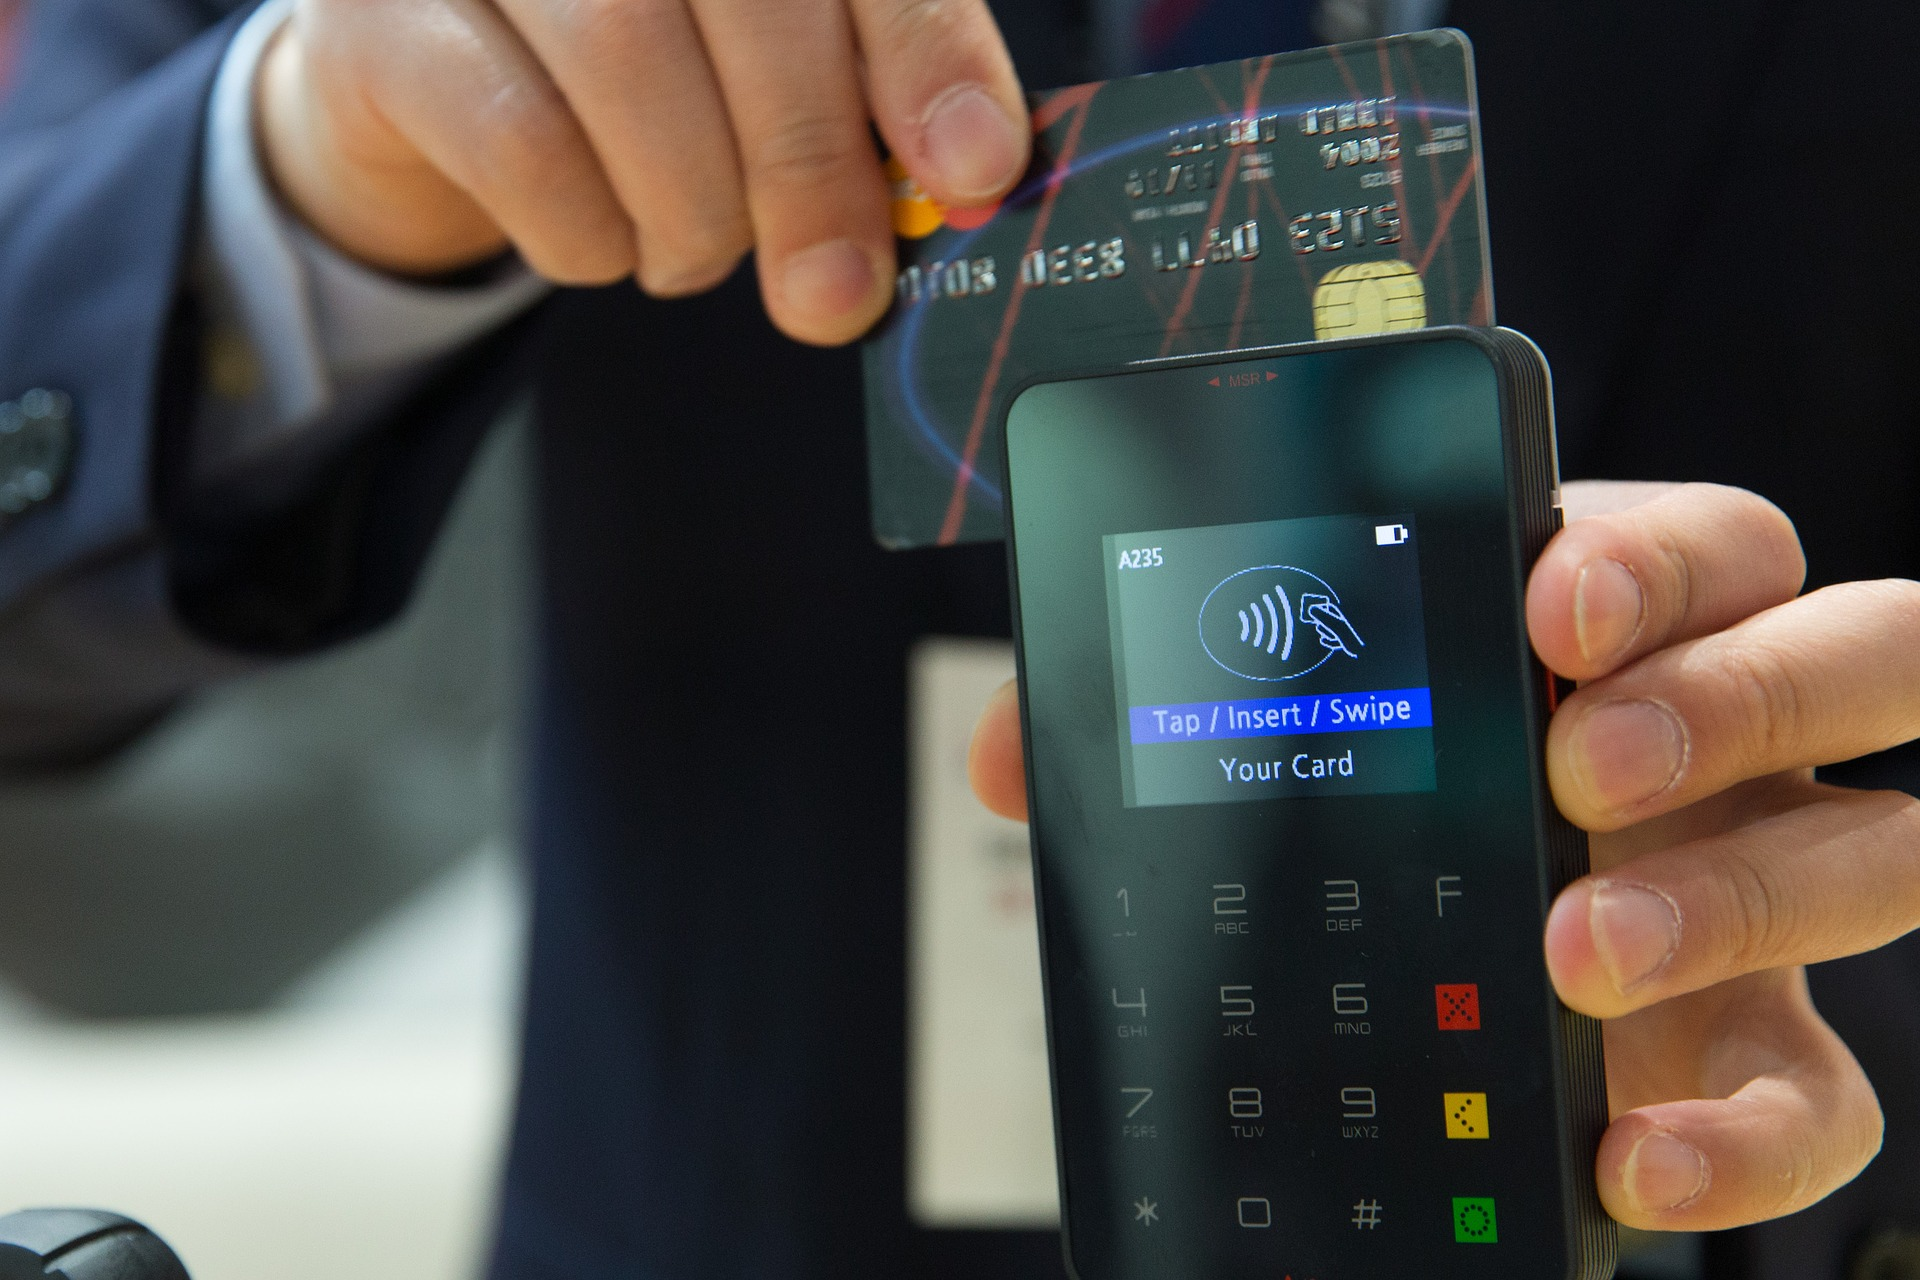 Convenience Trumps Security as Main Driver Behind Consumer Payment Needs in 2019